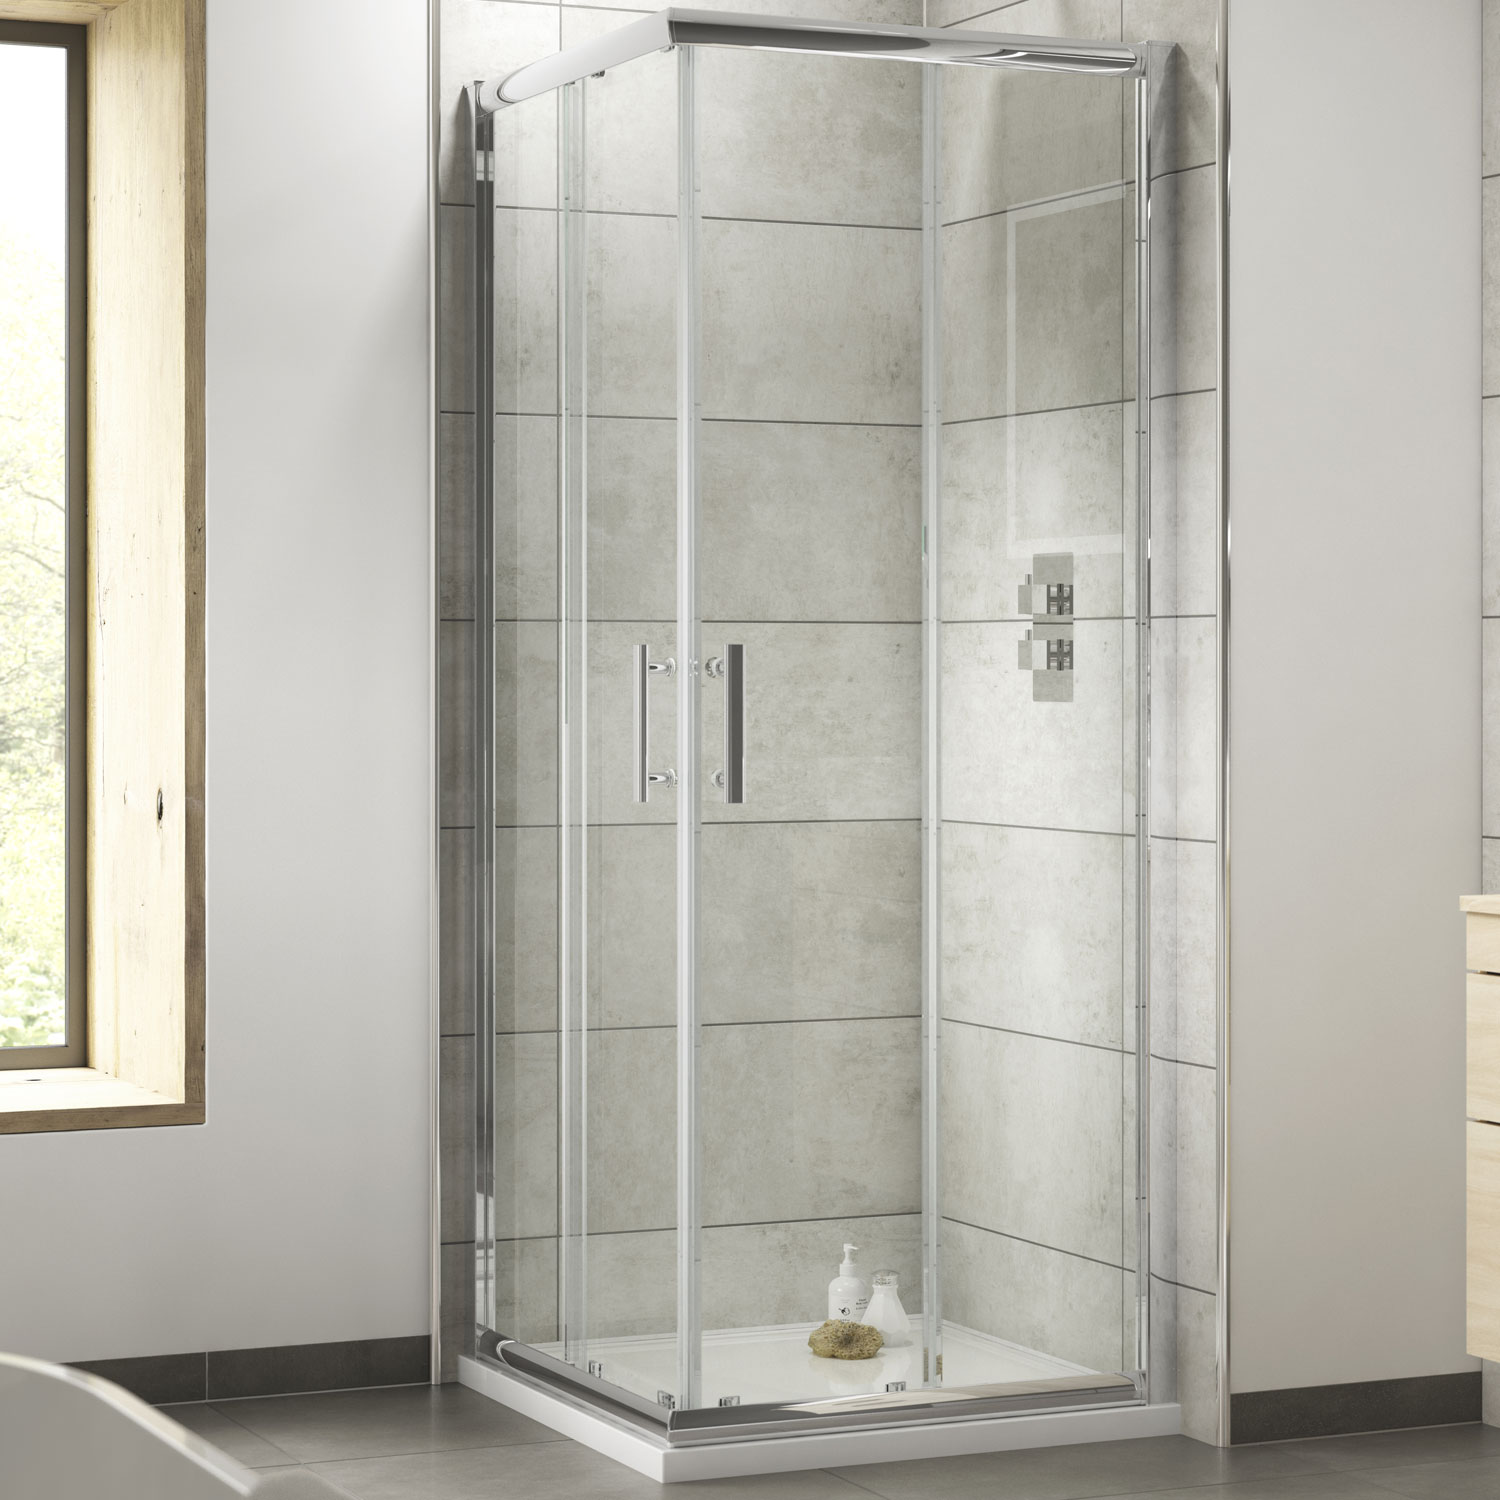 Premier Pacific Corner Entry Shower Enclosure 760mm x 760mm - 6mm Glass-1